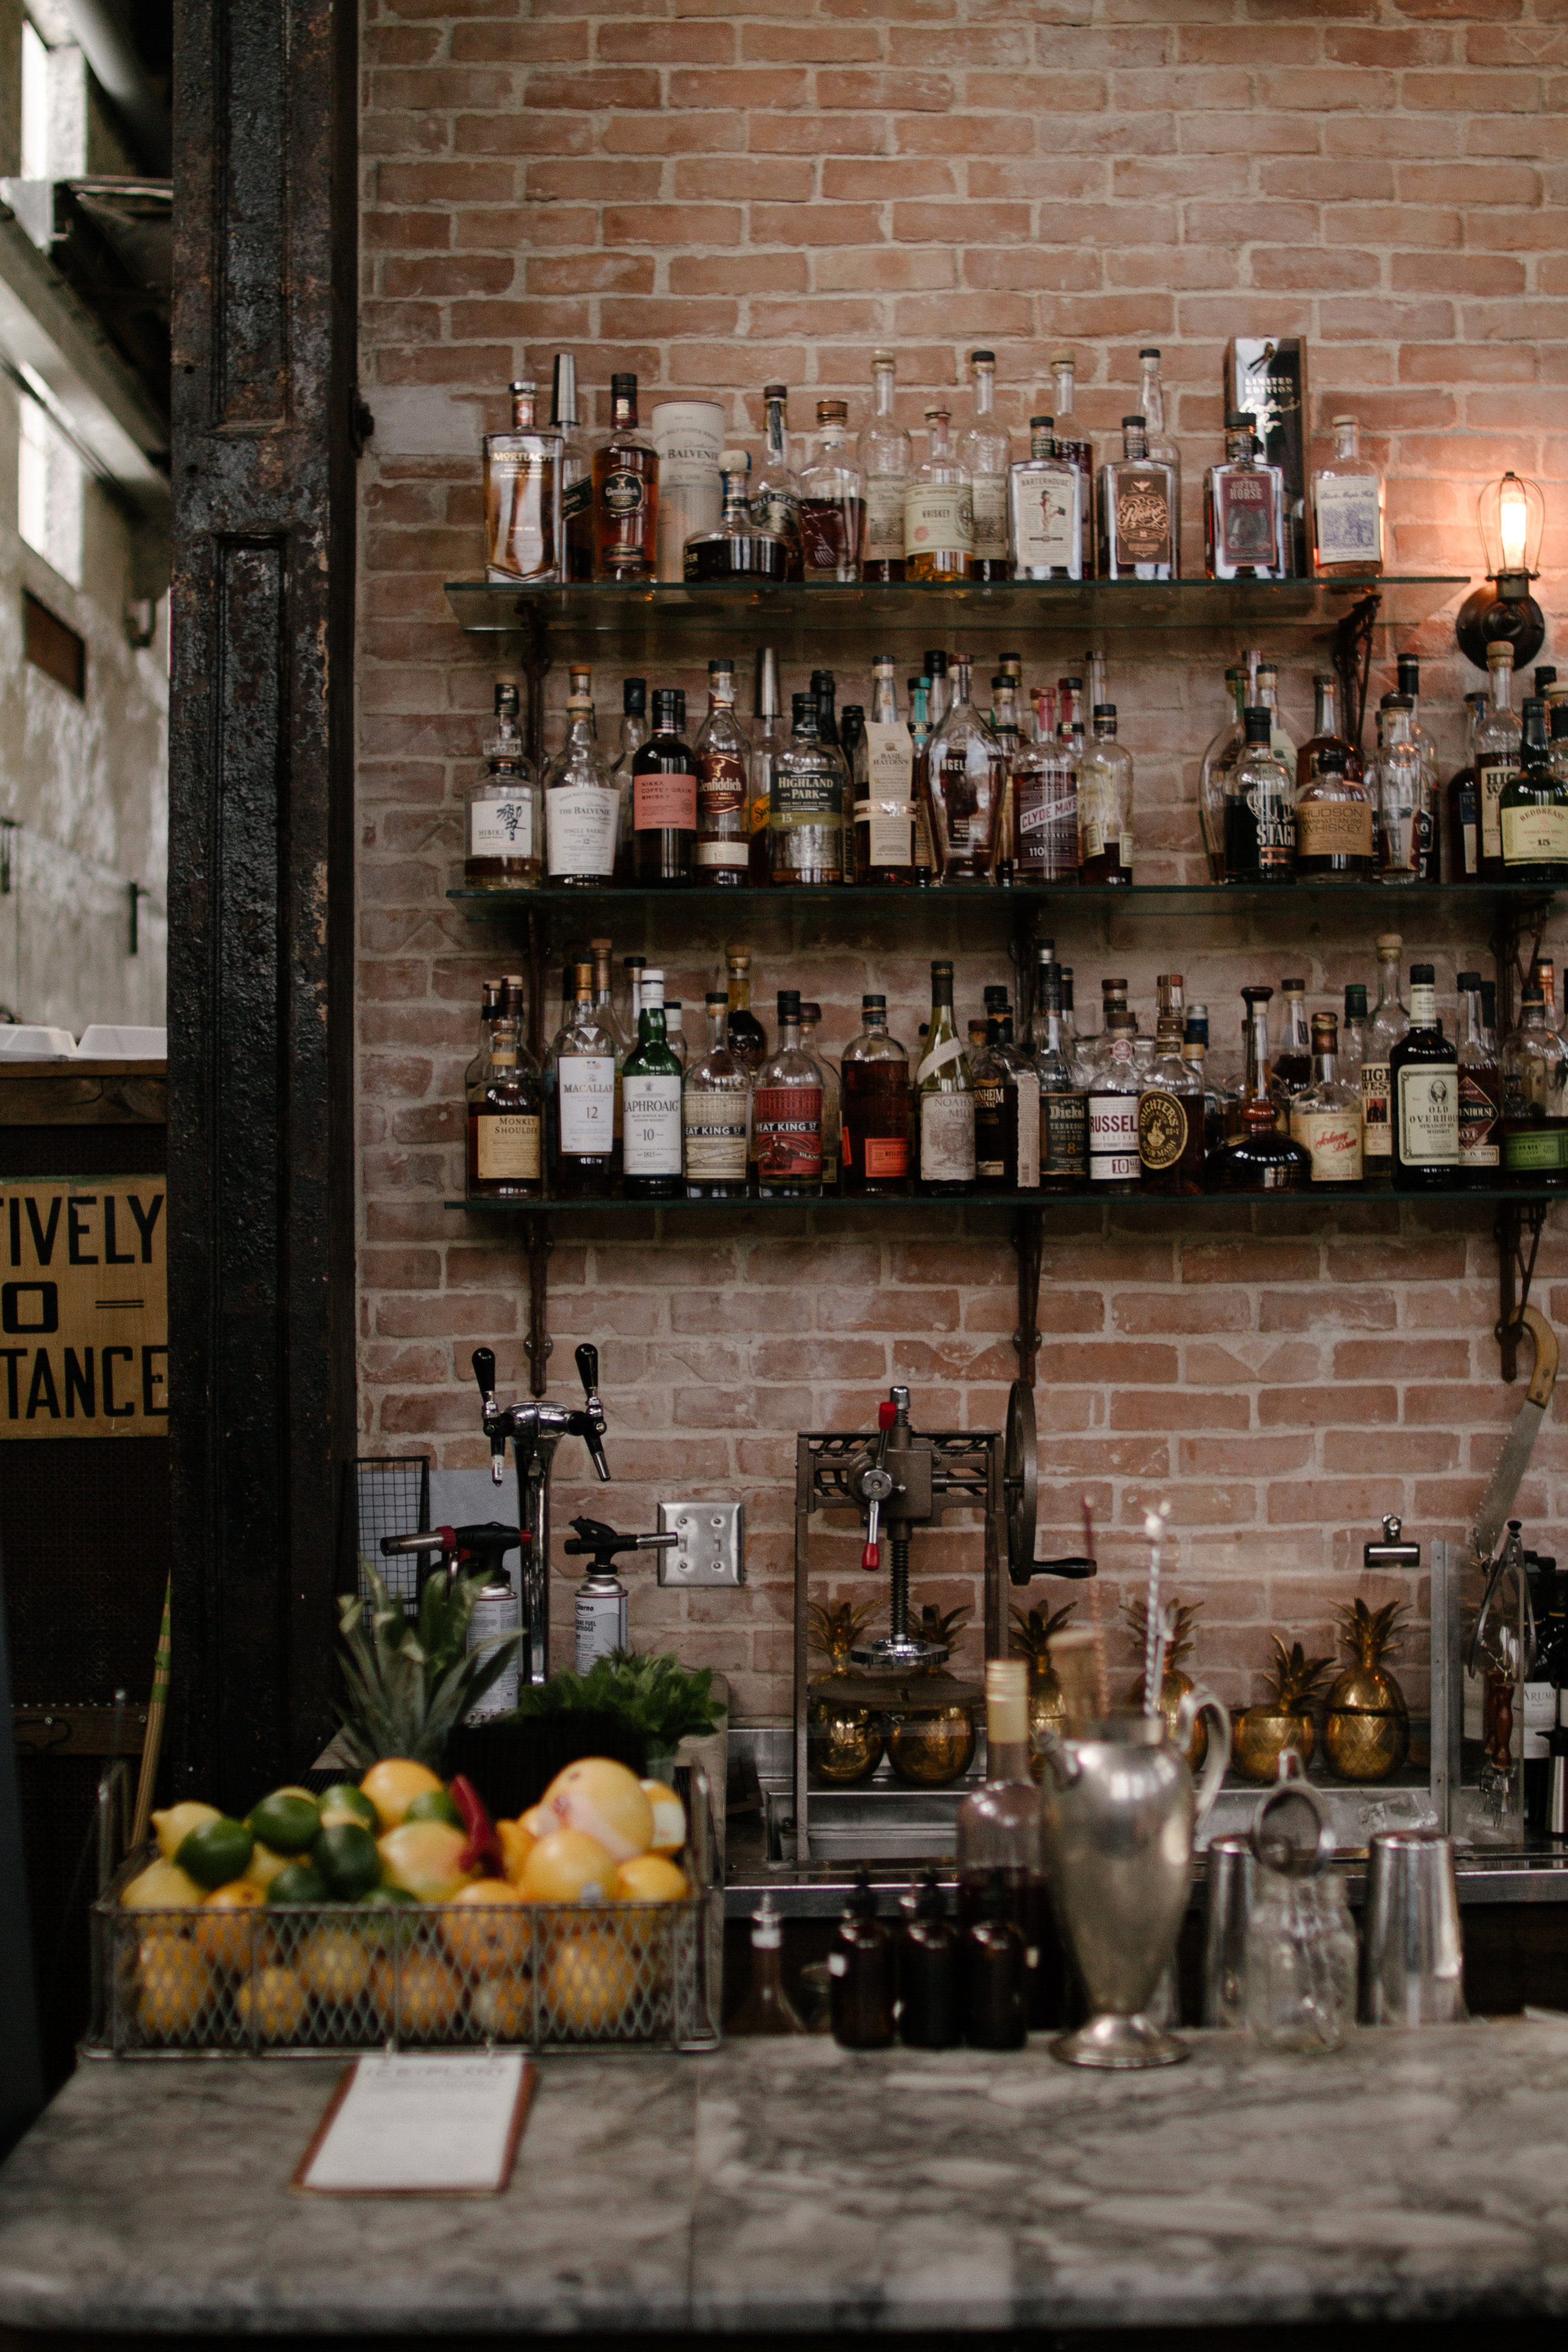 We visited Ice Plant multiple times that weekend for their incredible menu and cocktails! Their brunch will blow your mind.